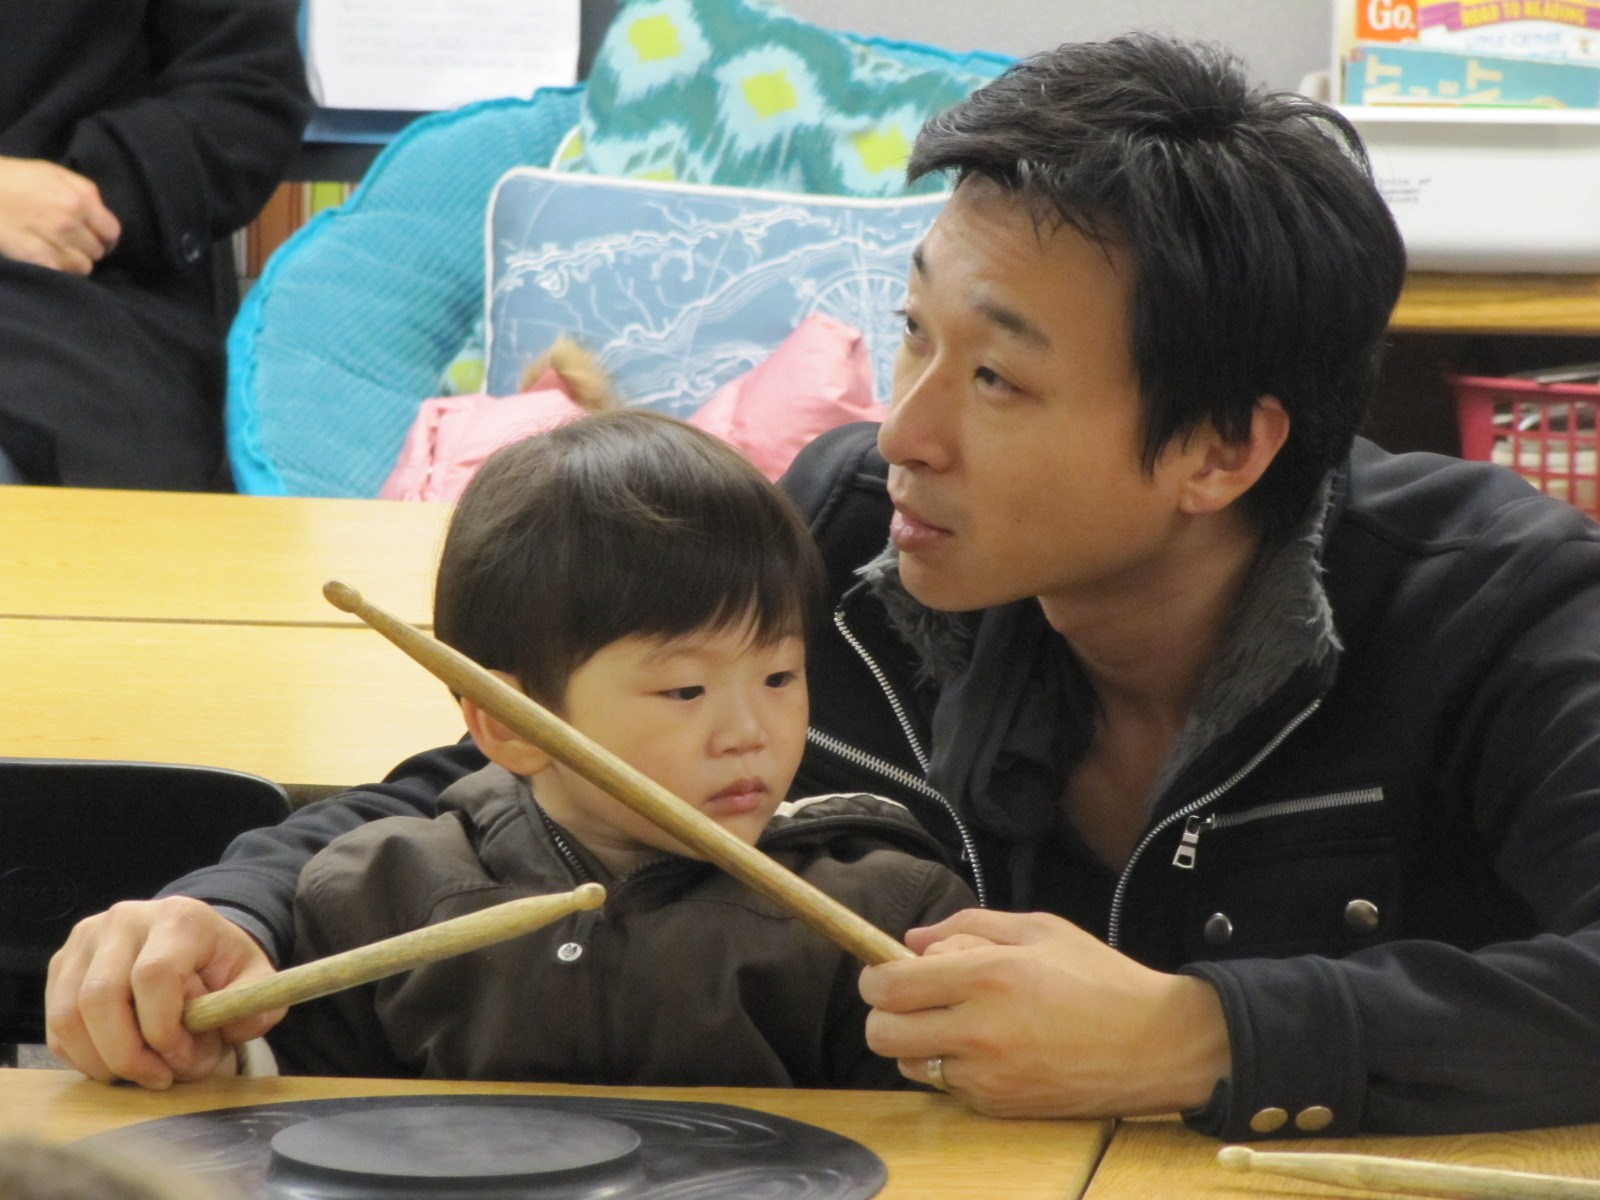 A young boy and his fother using drum sticks.